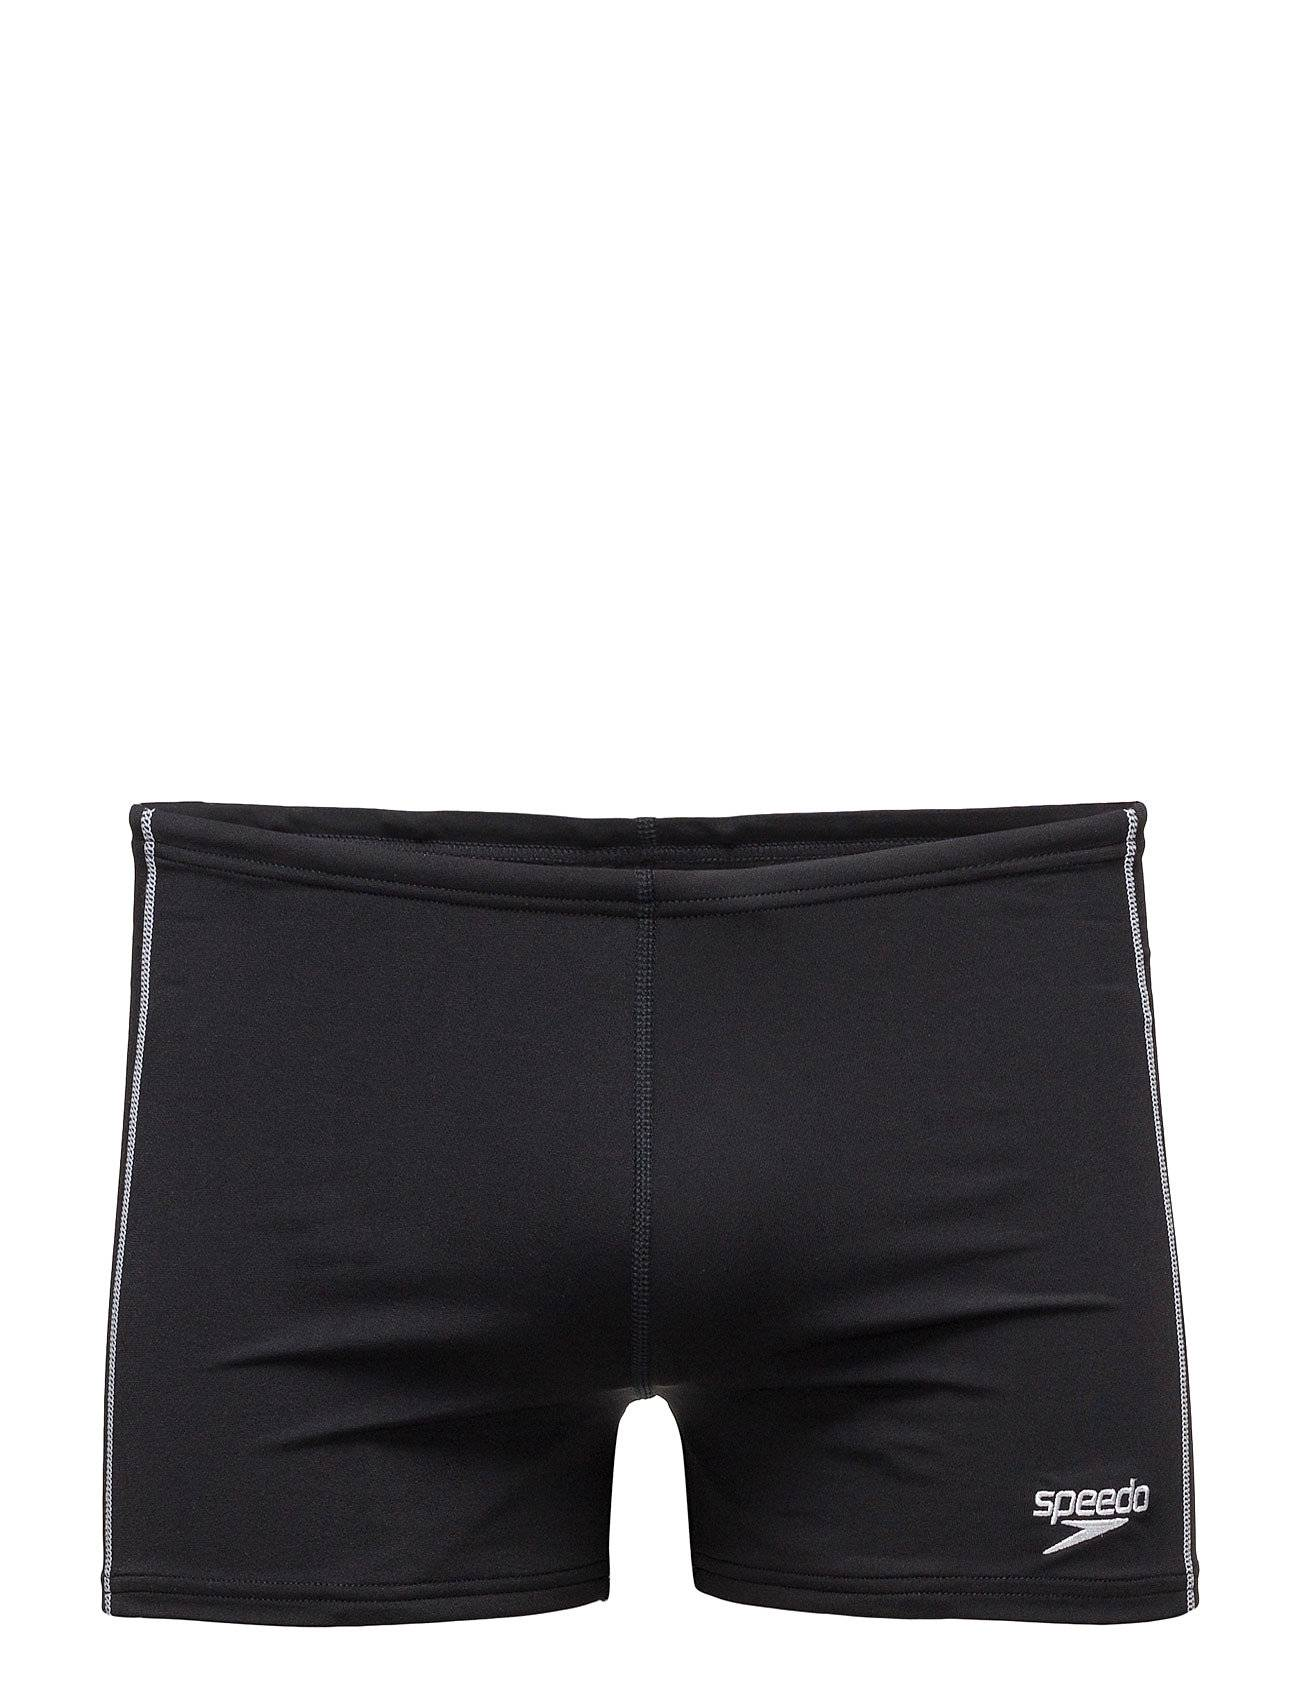 Speedo Classic+ Asht Am, Black 3